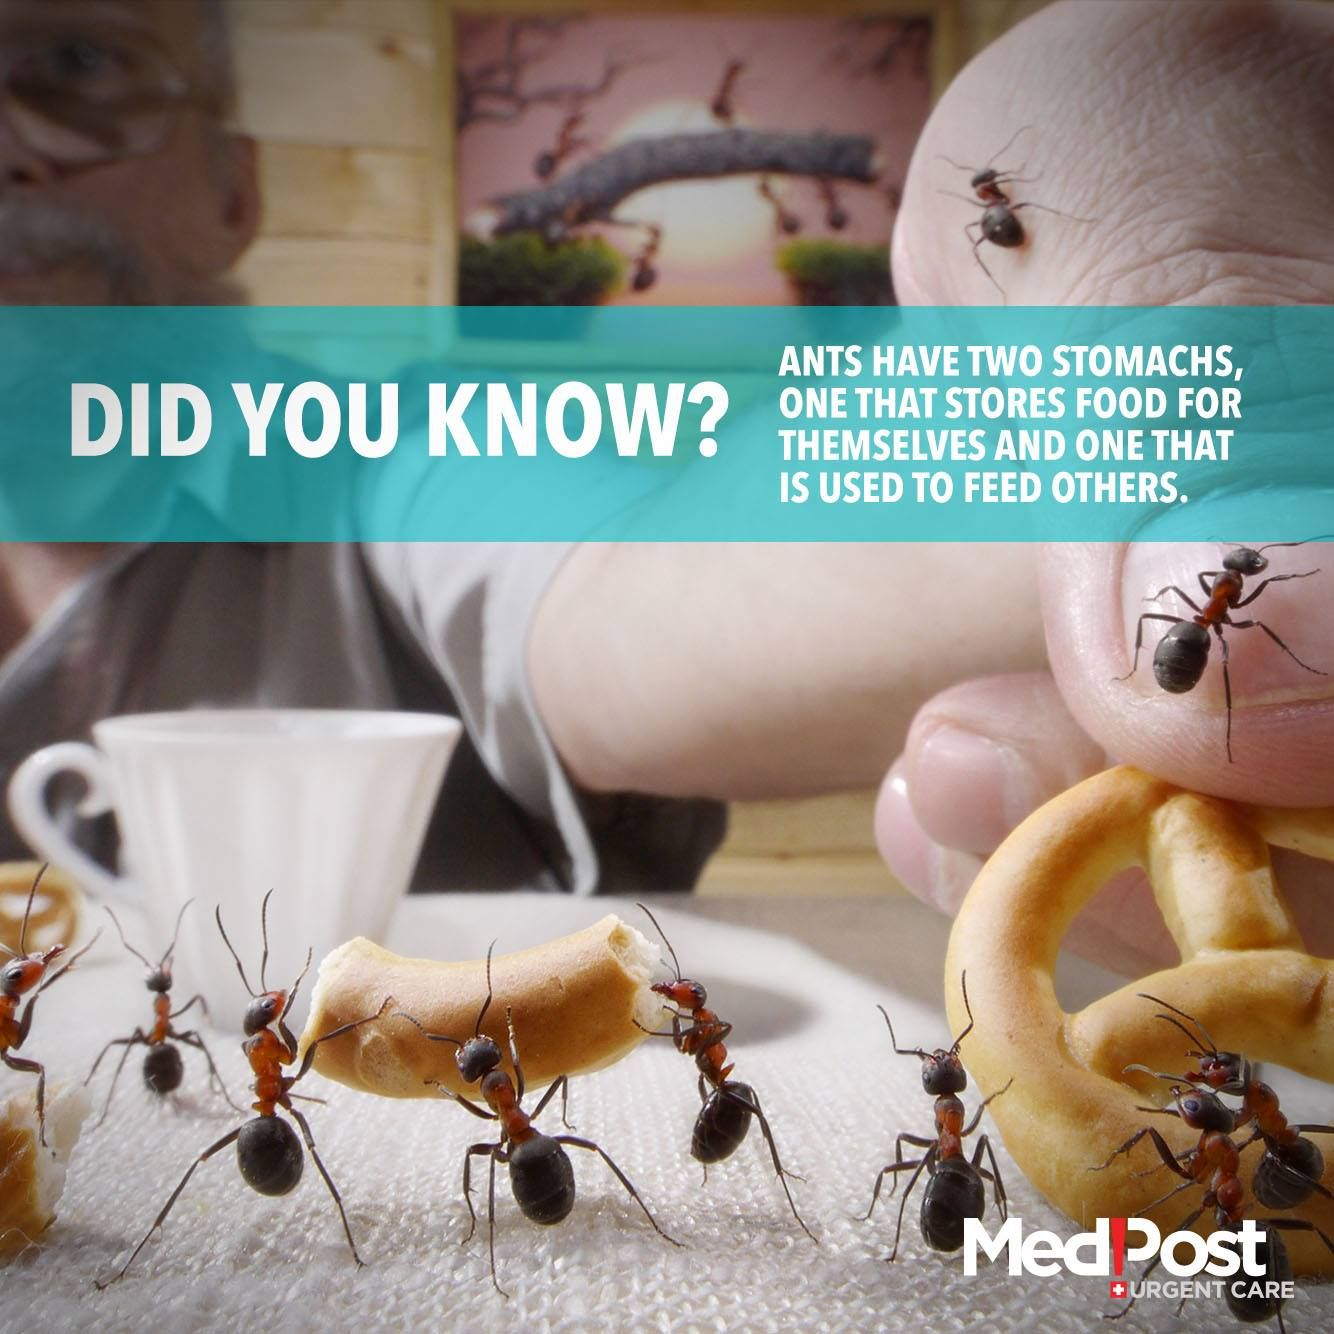 #Ants Have Two #Stomachs, One that Stores Food and one that Feeds Others.